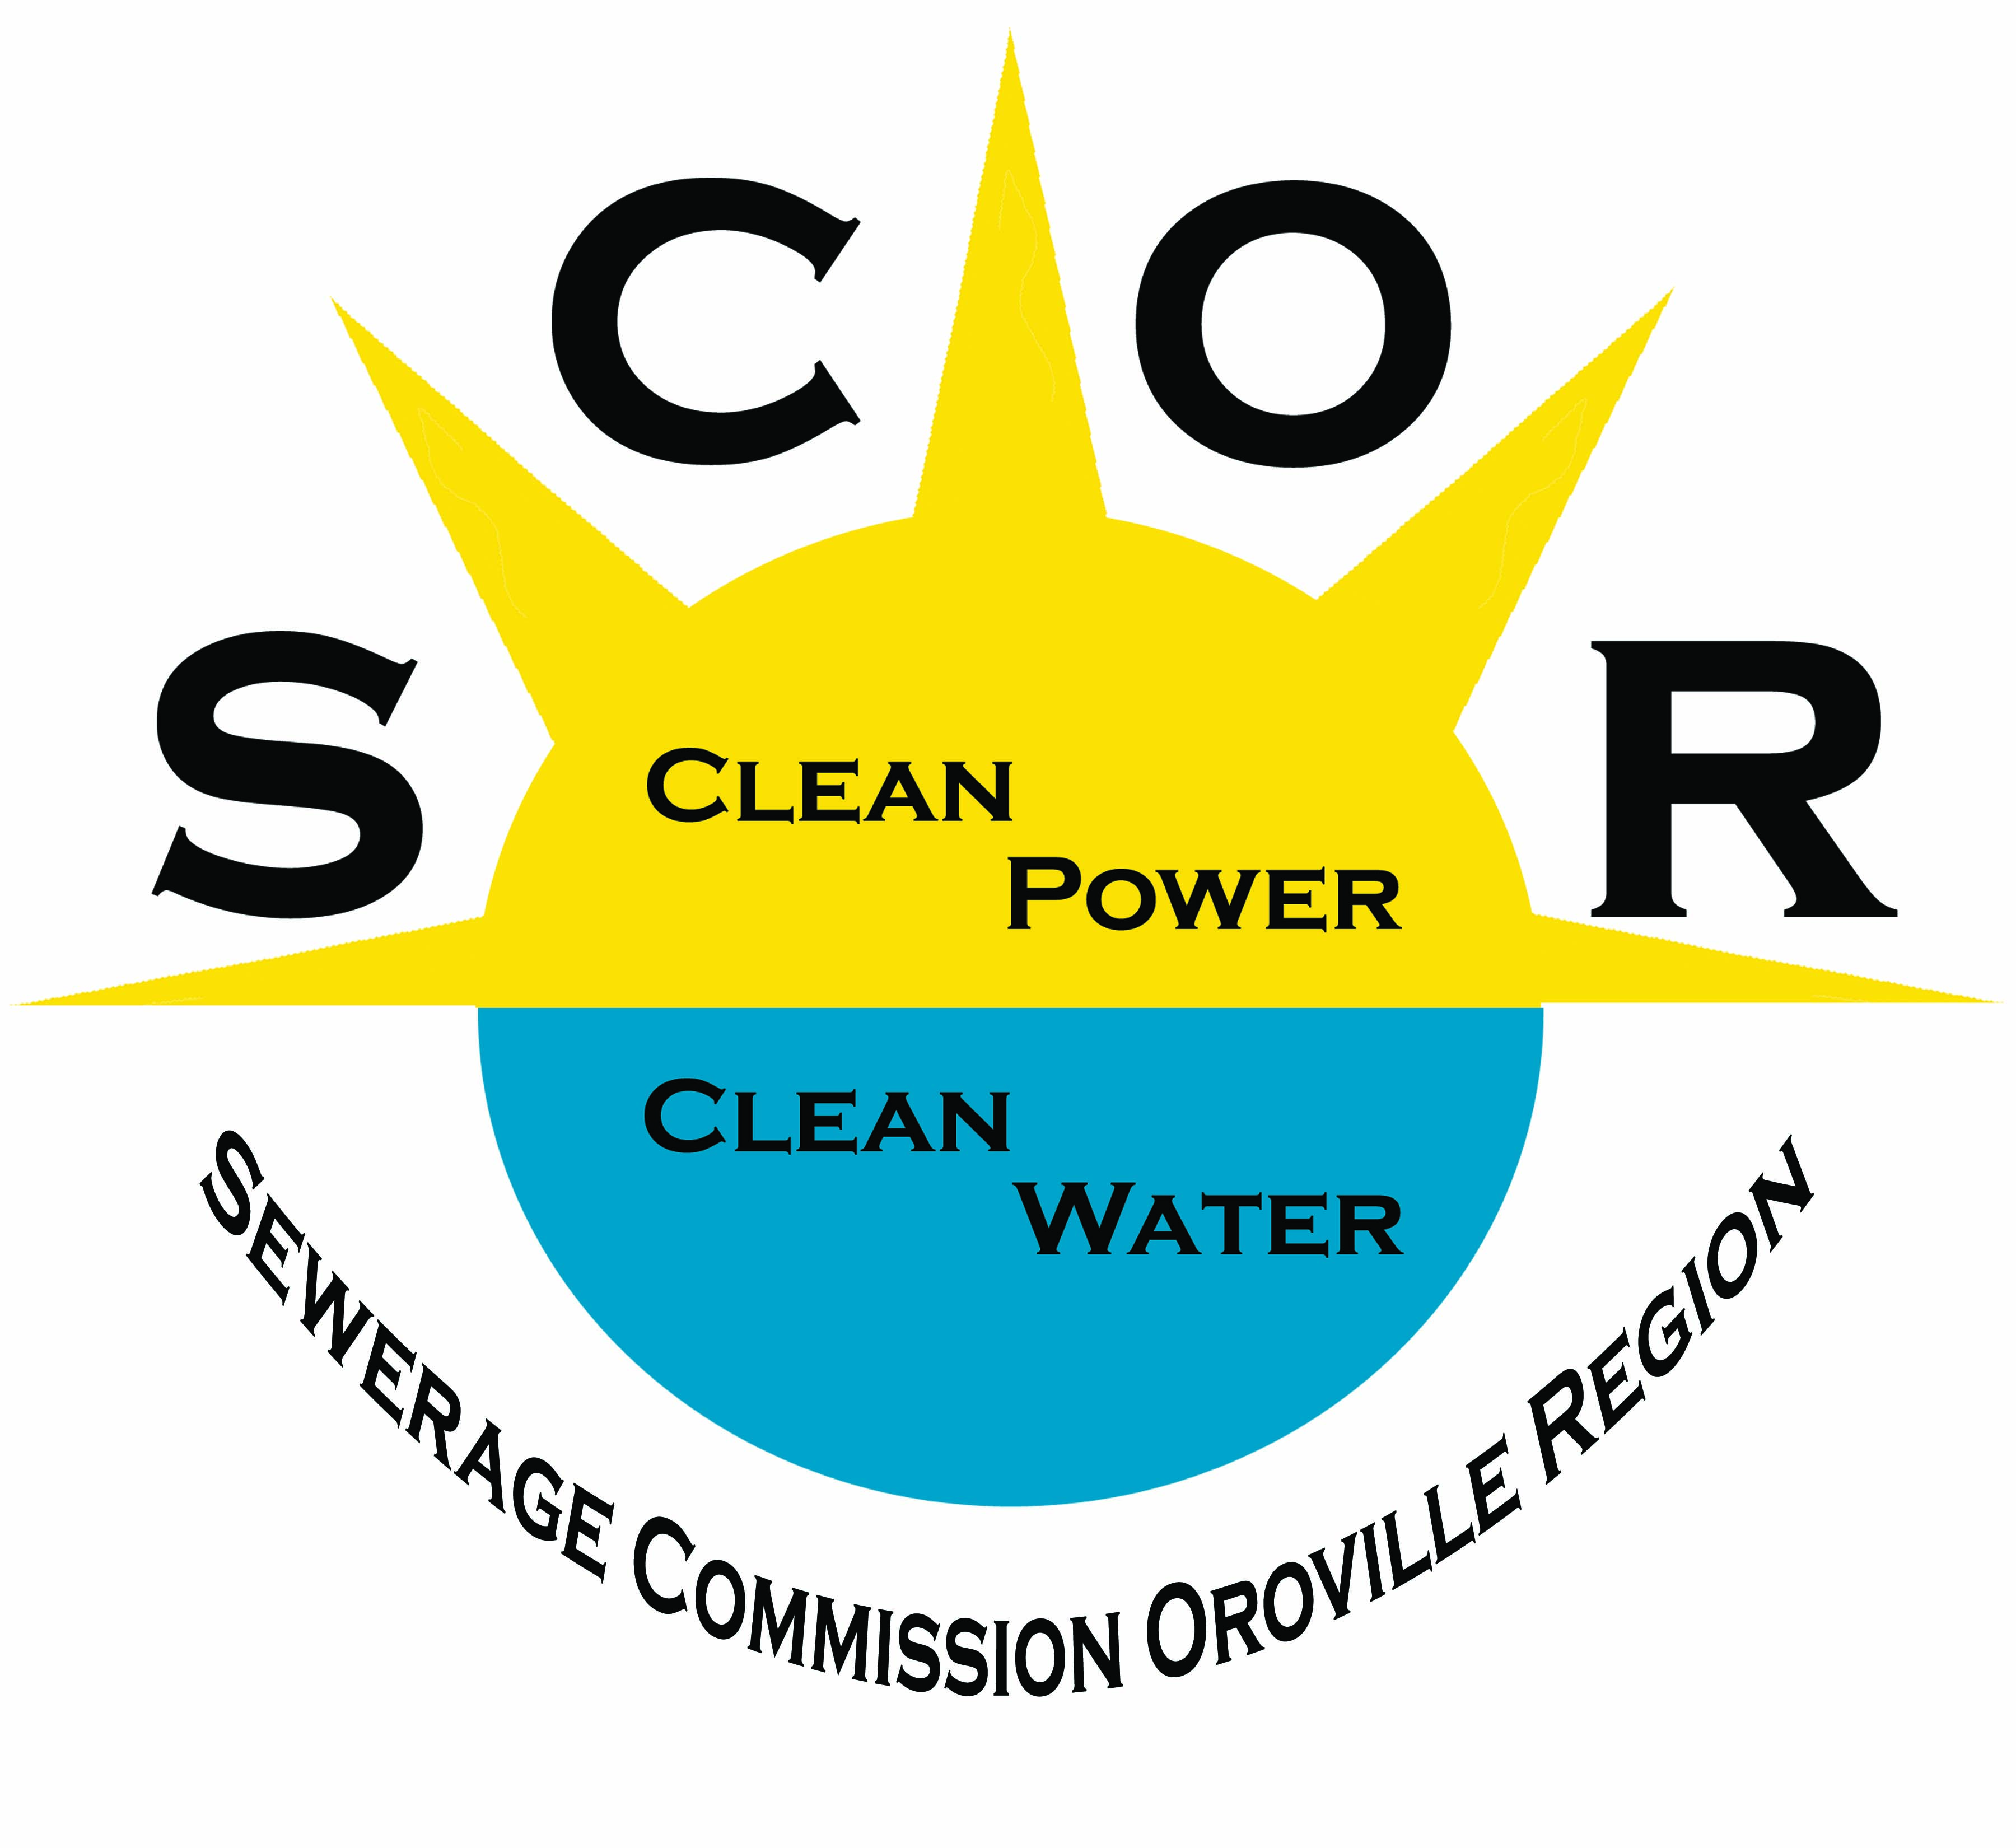 Sewerage Commission - Oroville Region